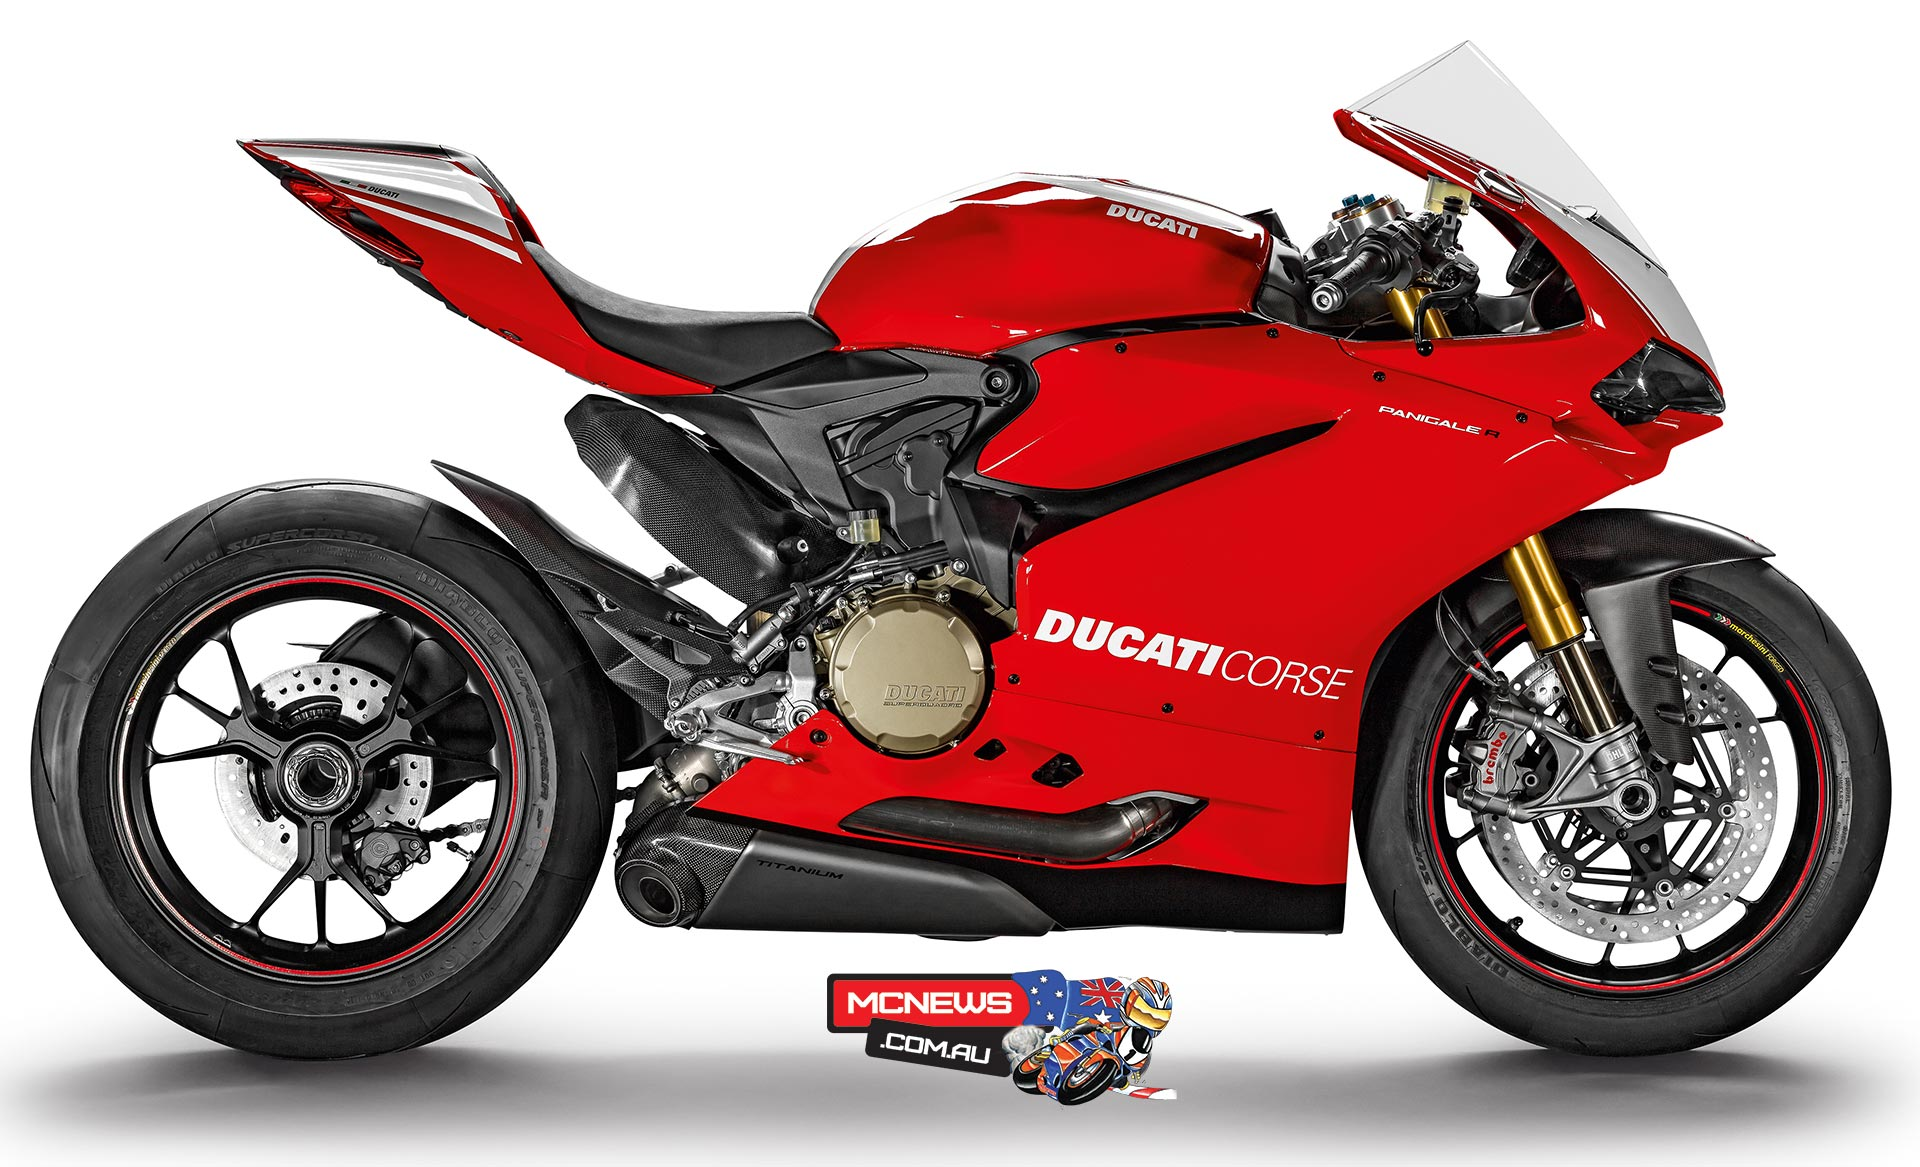 2015 Ducati Panigale R maintains its 1198cc capacity to maintain homologation for Superbike competition